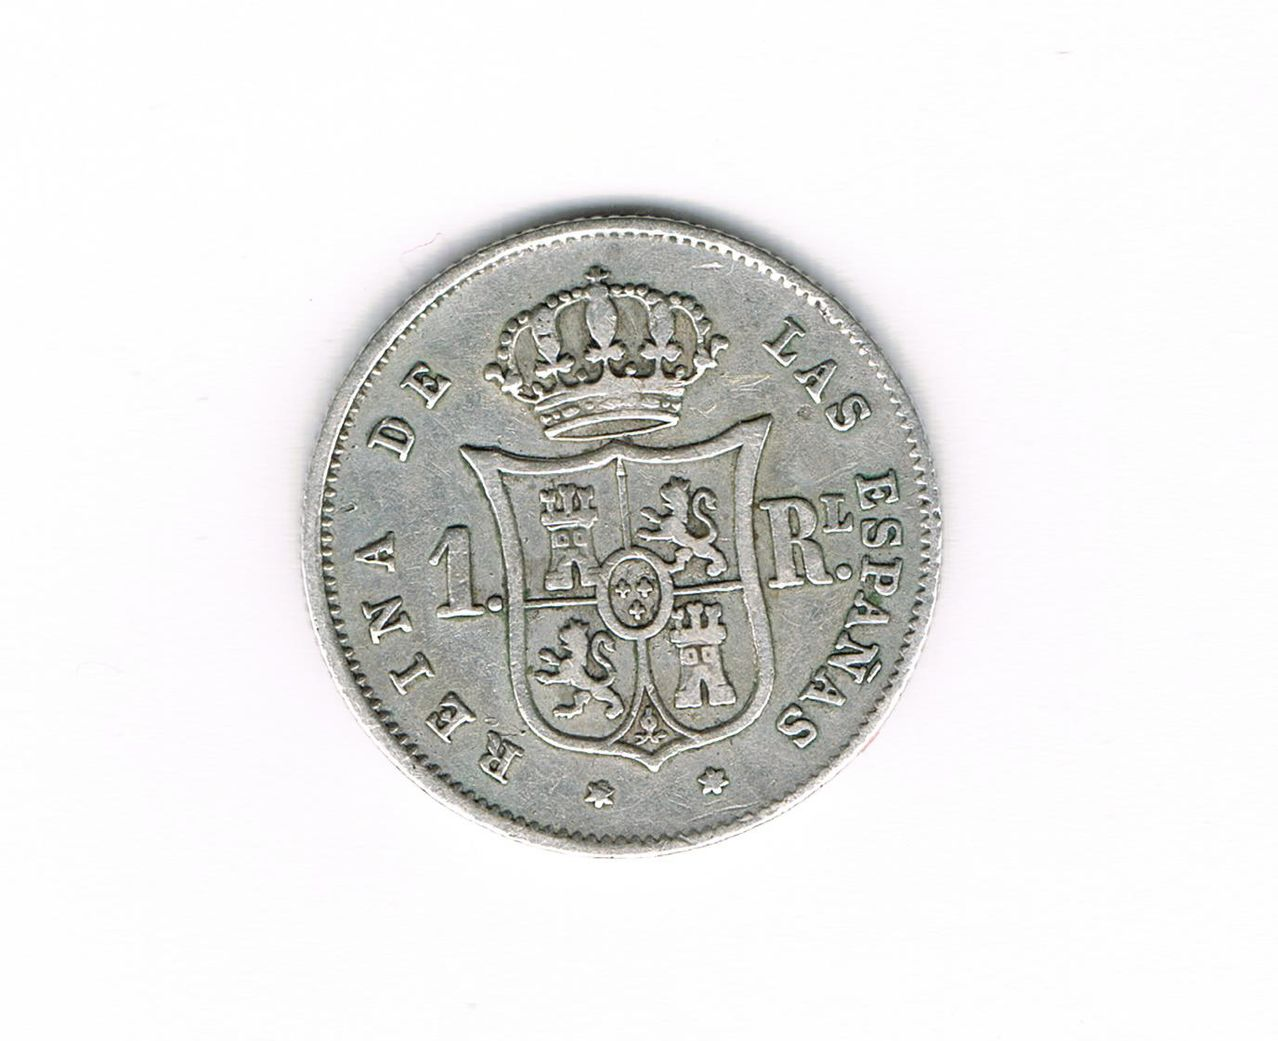 1 Real 1852. Isabel II - Madrid. 1_Real_Plata_Isabel_II_1852_Madrid_B